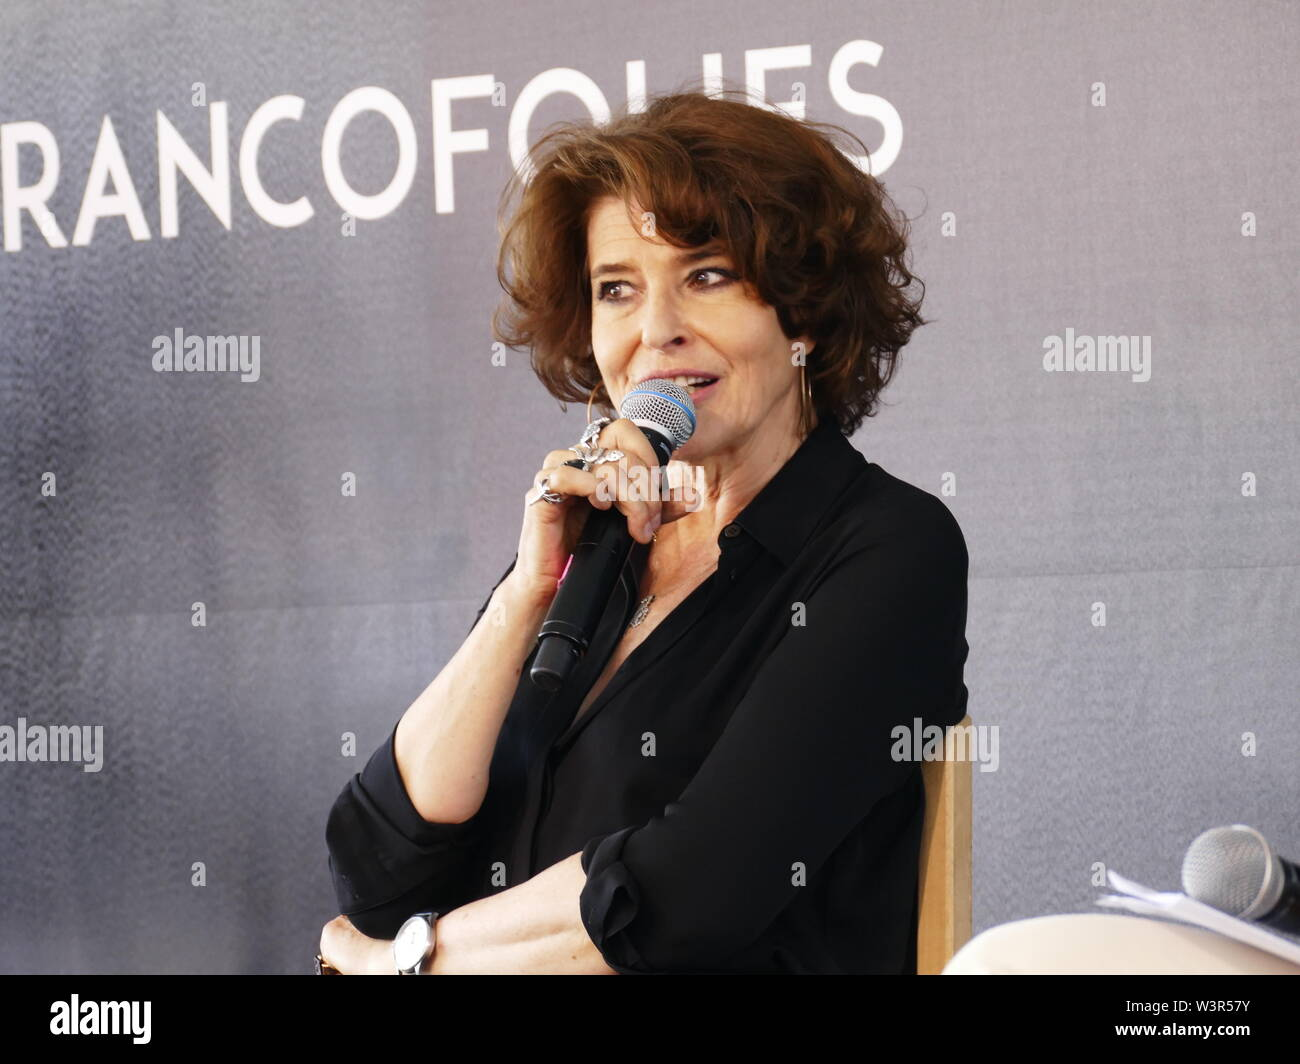 Fanny Ardant is arrived to Francofolies of La Rochelle to speak of songs that have marked him - Stock Image